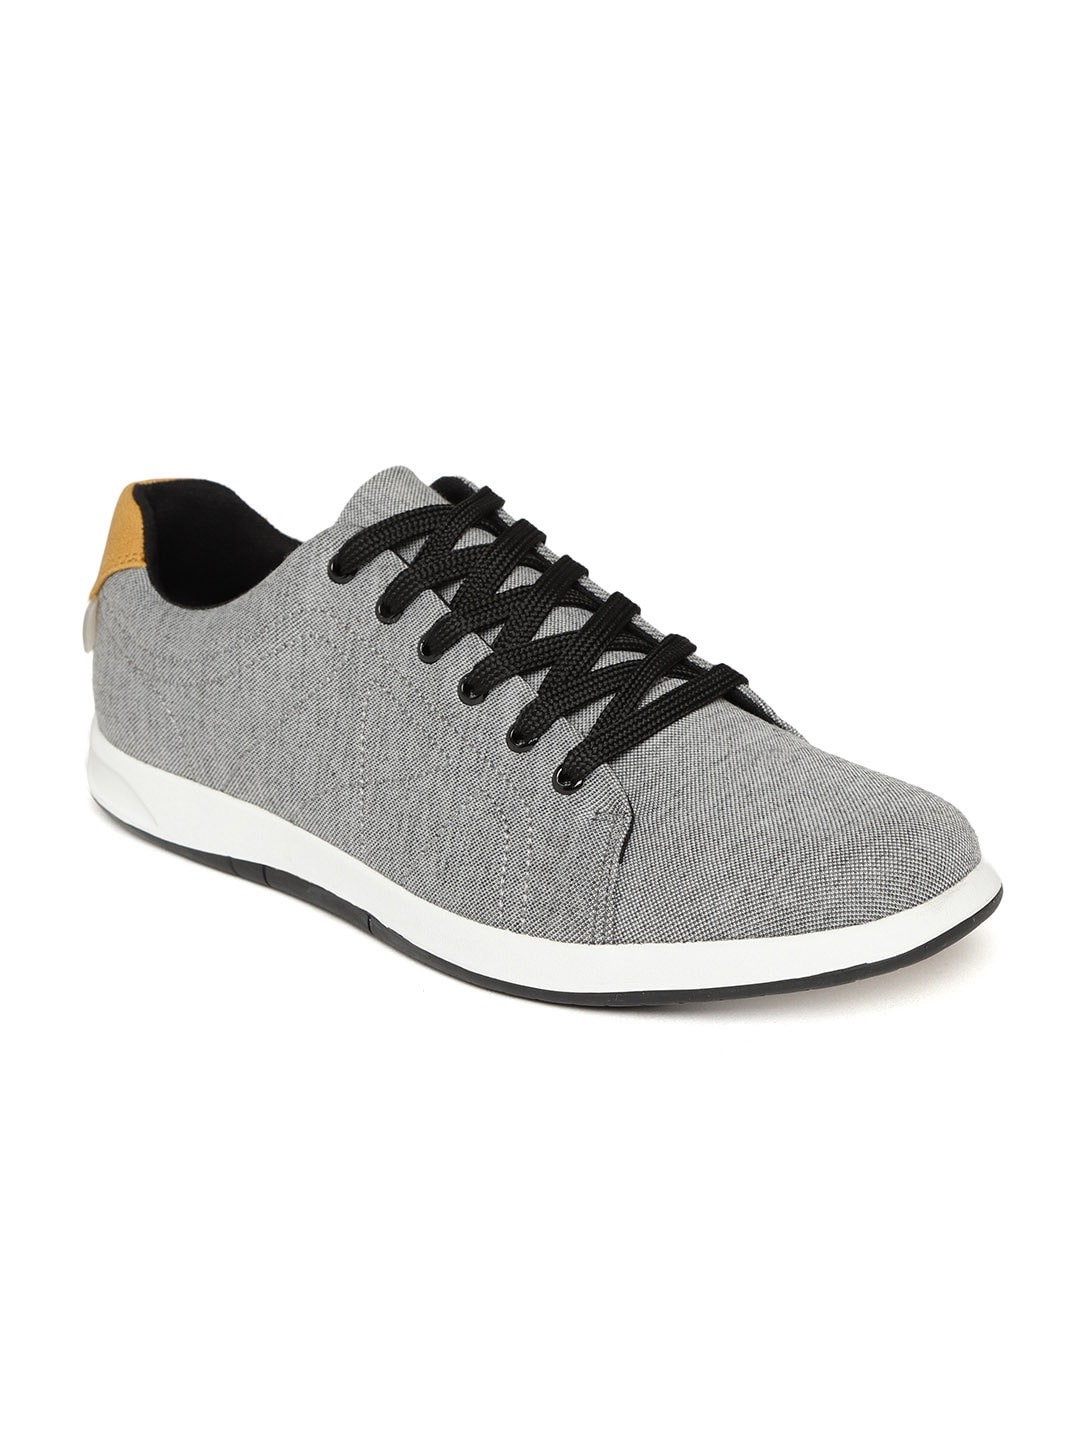 best website d1301 ab389 Casual Shoes For Men - Buy Casual  Flat Shoes For Men  Myntr